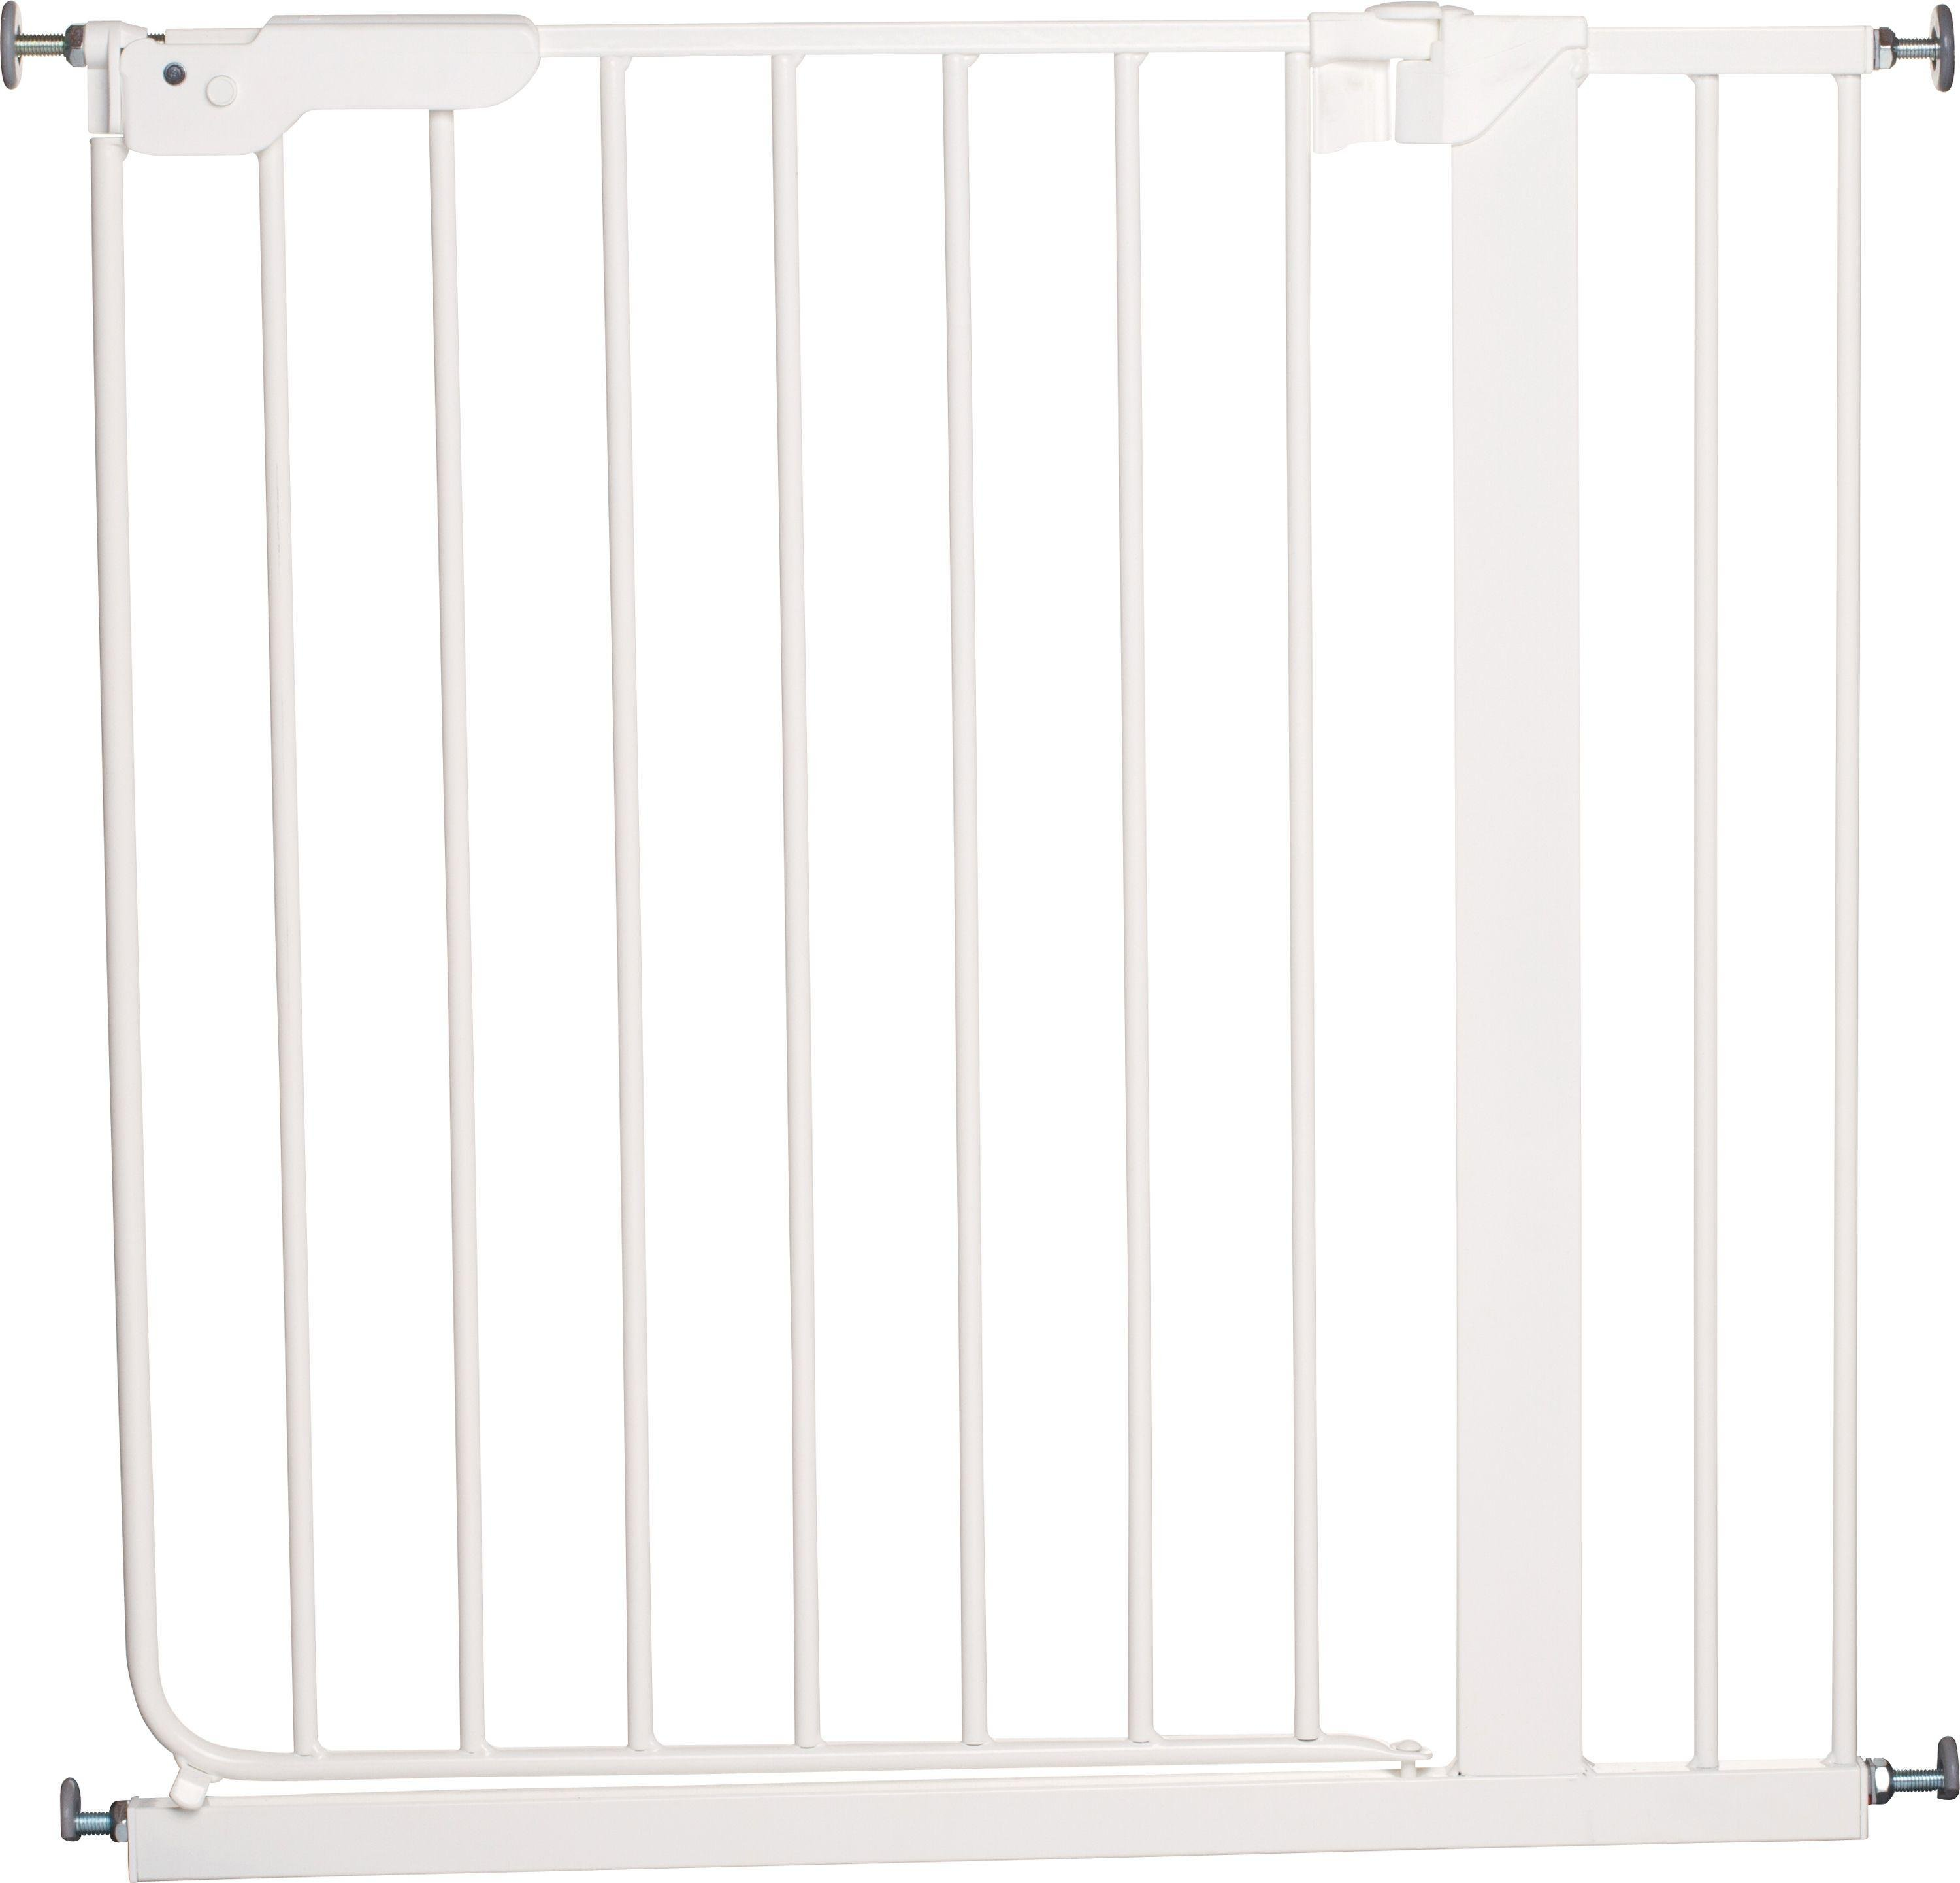 Image of BabyDan Danamic Pressure Fit Safety Gate - White.